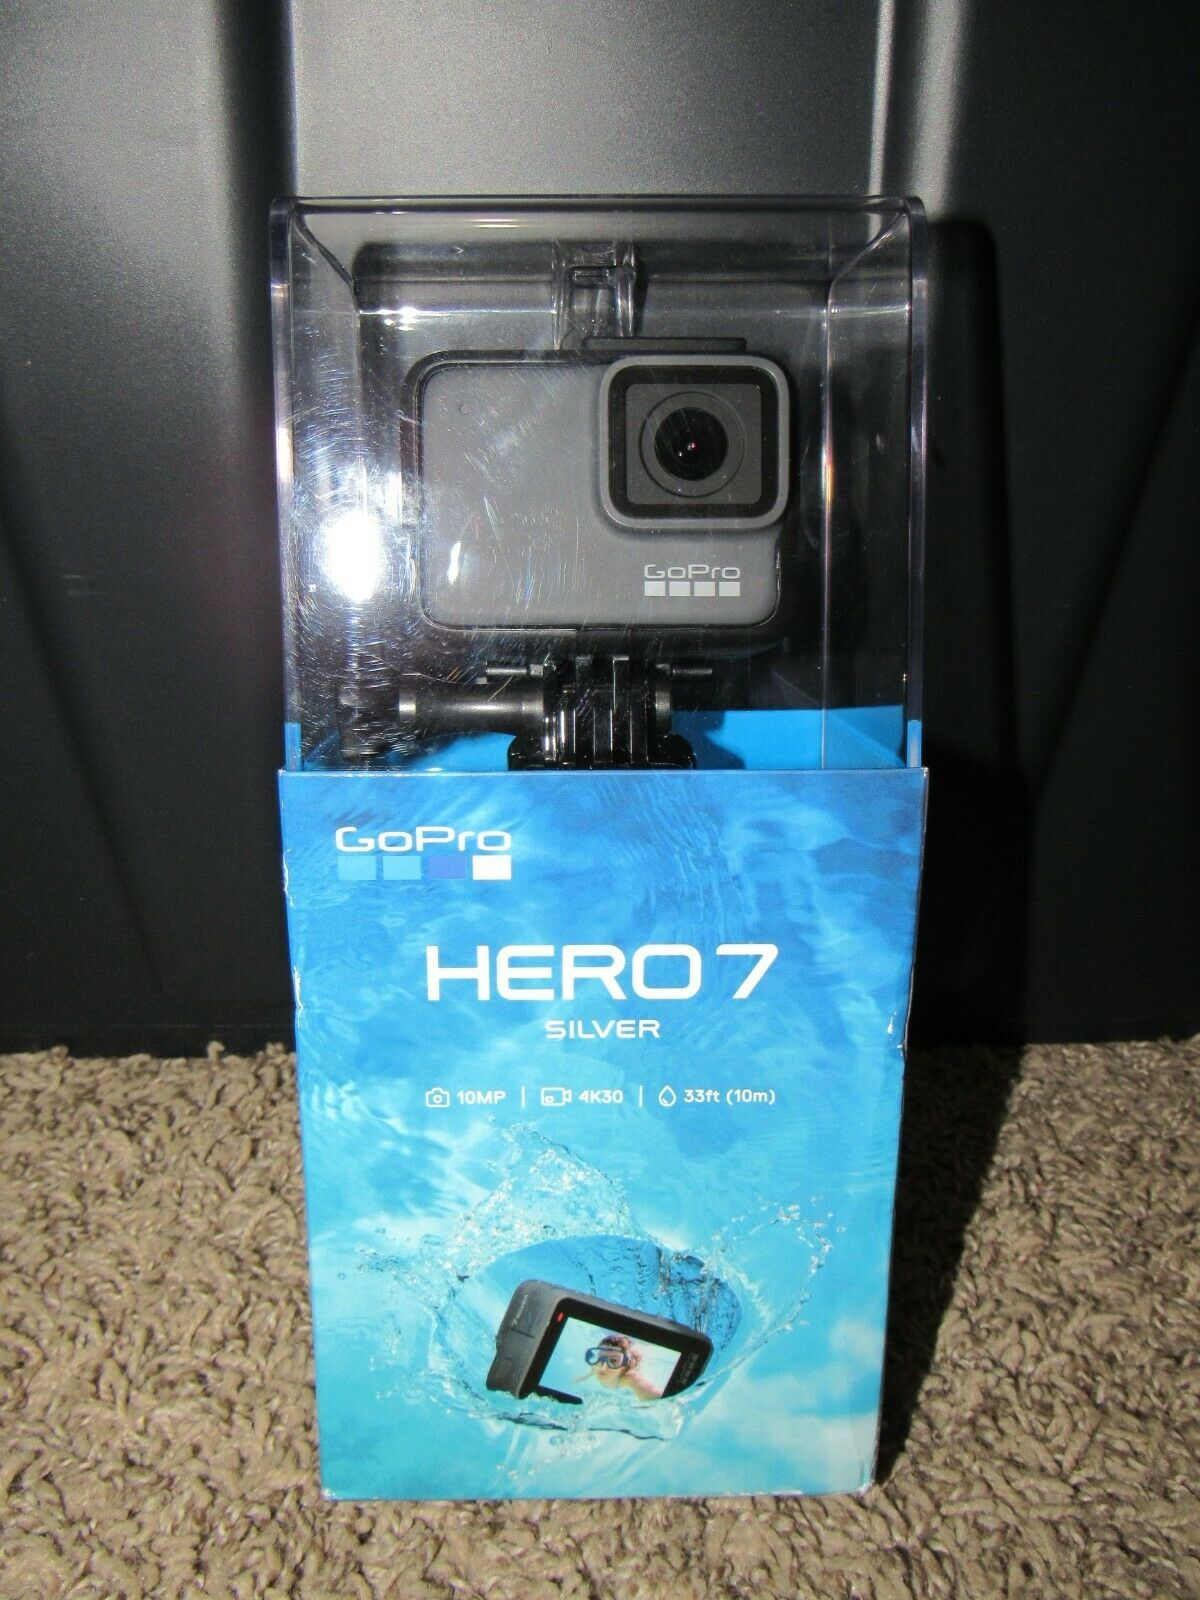 Go Pro HERO 7 SILVER Edition Waterproof Action Camera 4K30  NEW SEALED IN BOX !! action box camera edition hero pro sealed silver waterproof